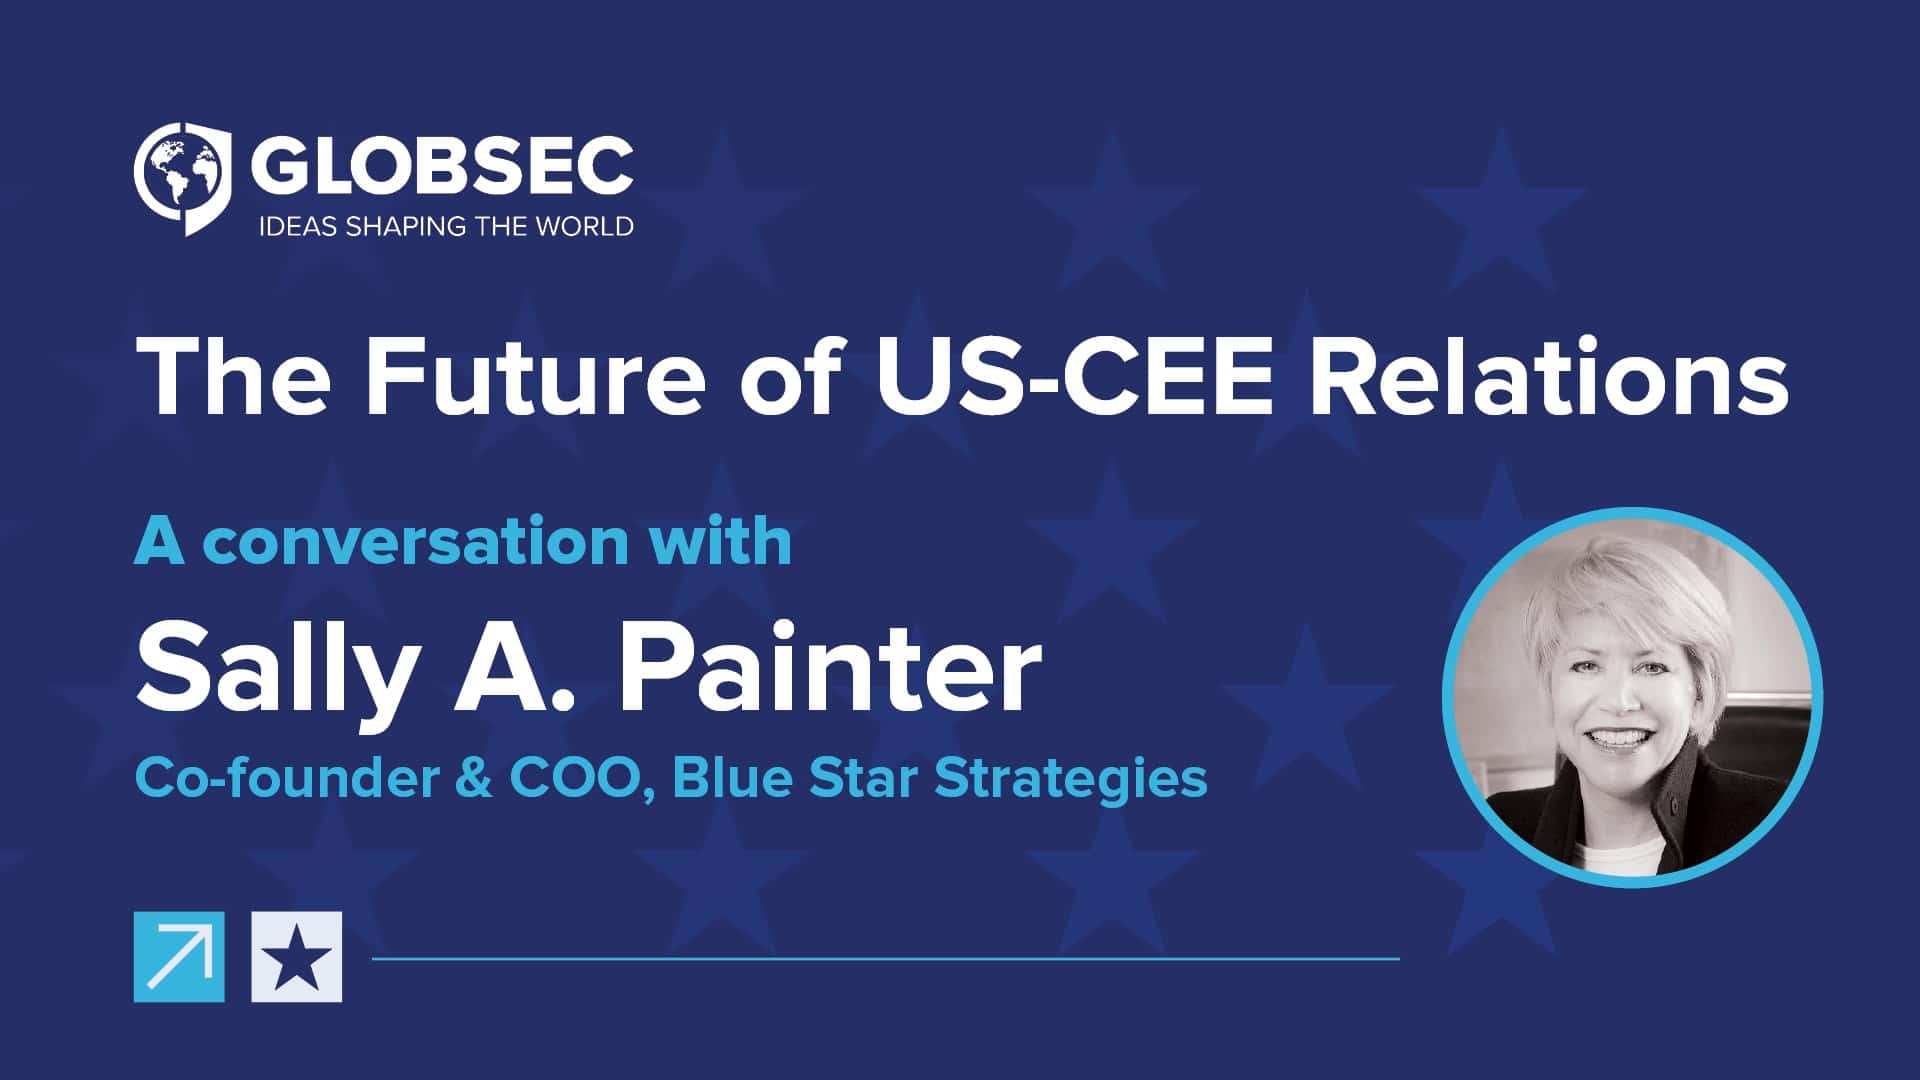 The Future of US-CEE Relations: Conversation with Sally A. Painter